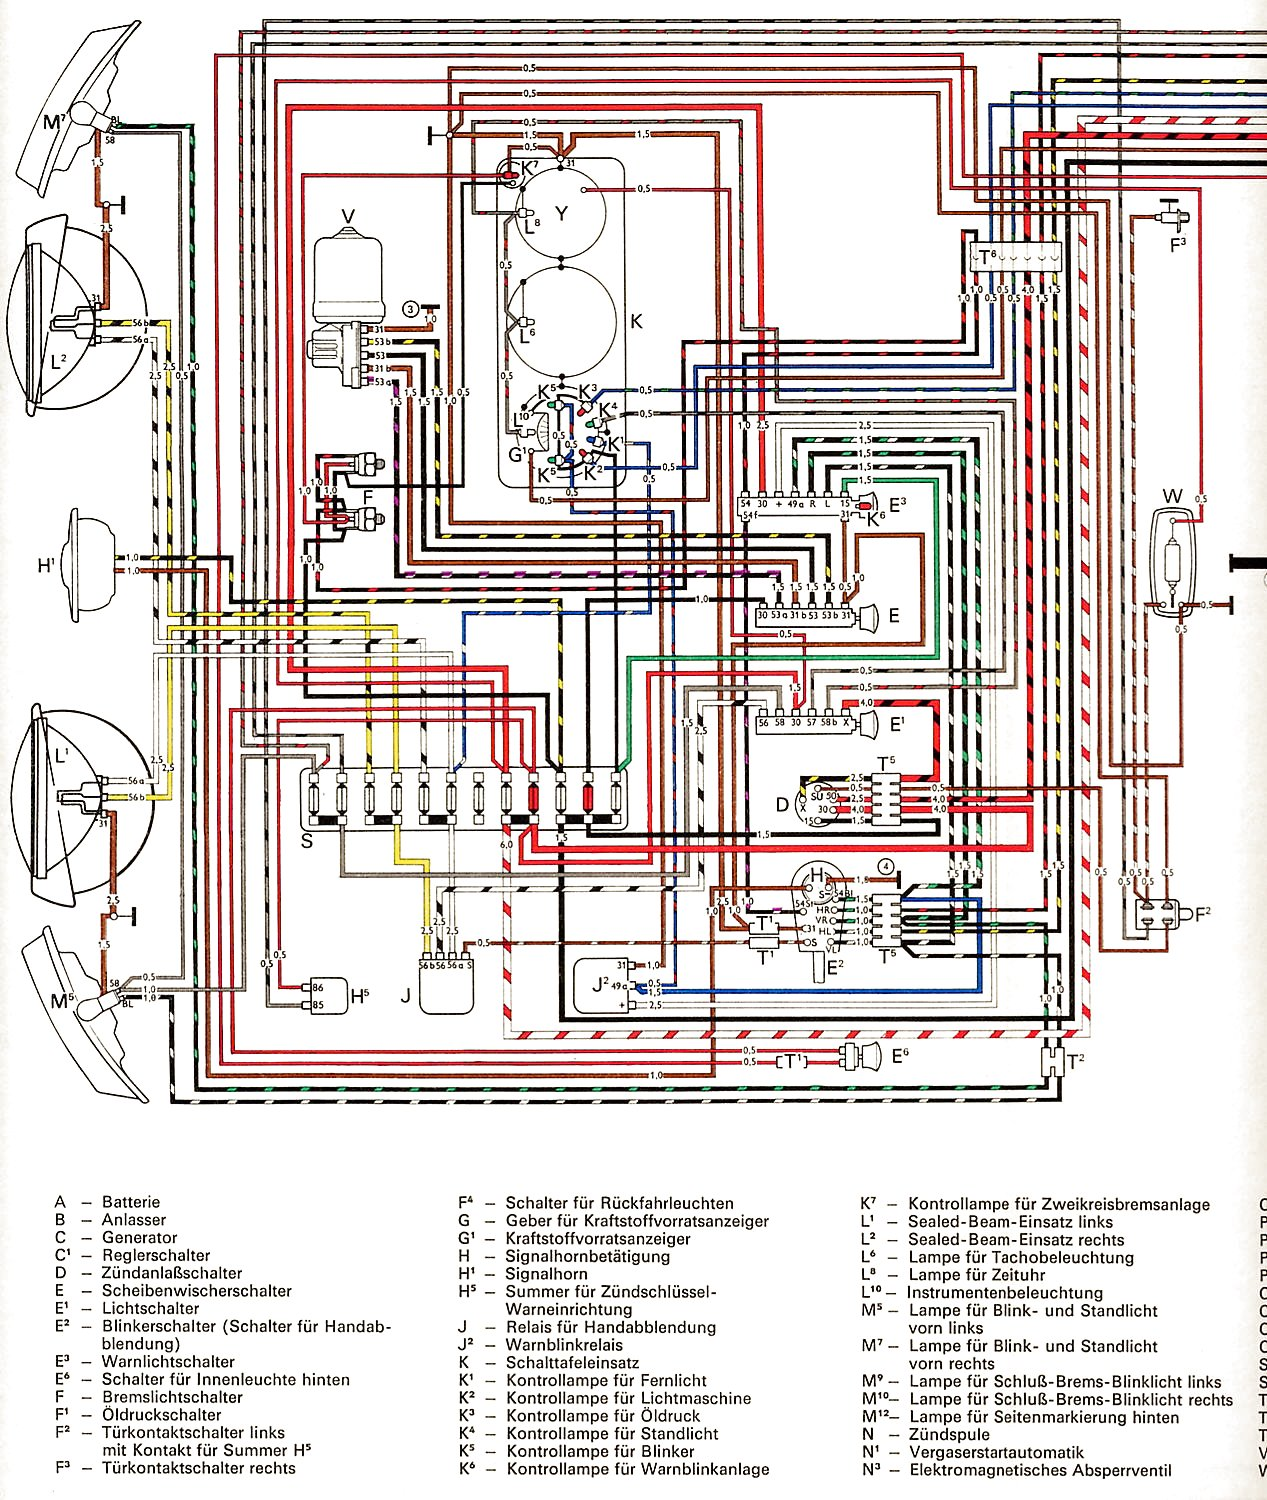 1971 vw squareback wiring diagram wiring diagram1971 vw super beetle auto shift wire diagram wiring diagram blogvw wiring diagram wiring diagram data